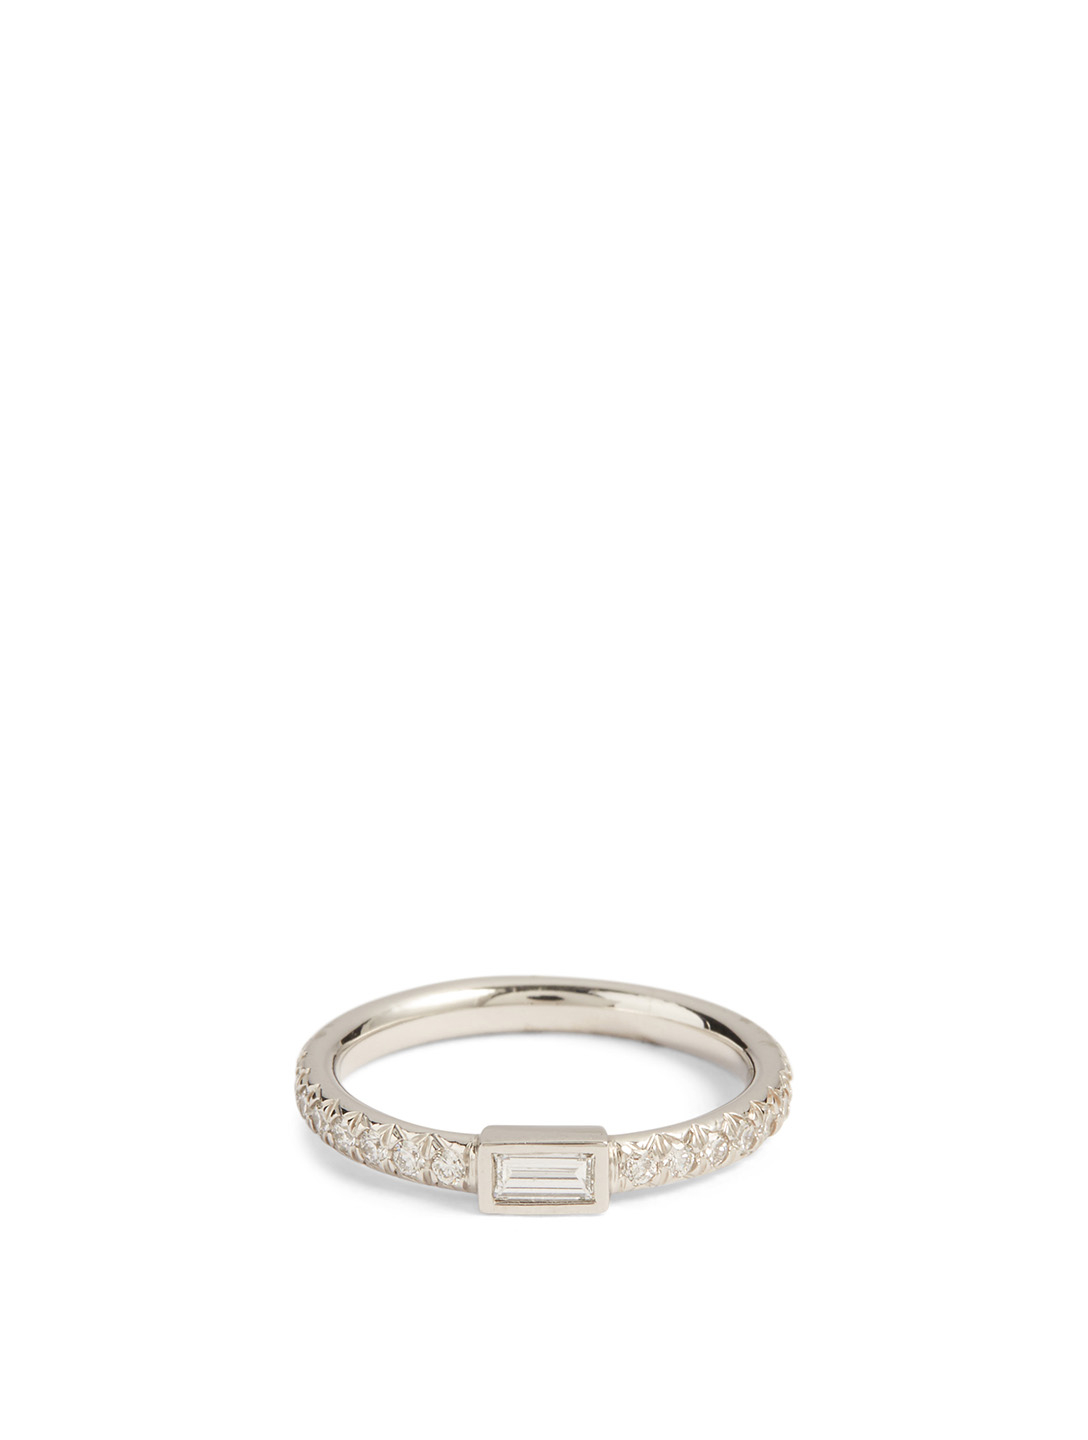 MARIA CANALE Bague à diamant baguette horizontal Essential en or blanc 18 ct ornée de diamants Femmes Métallique